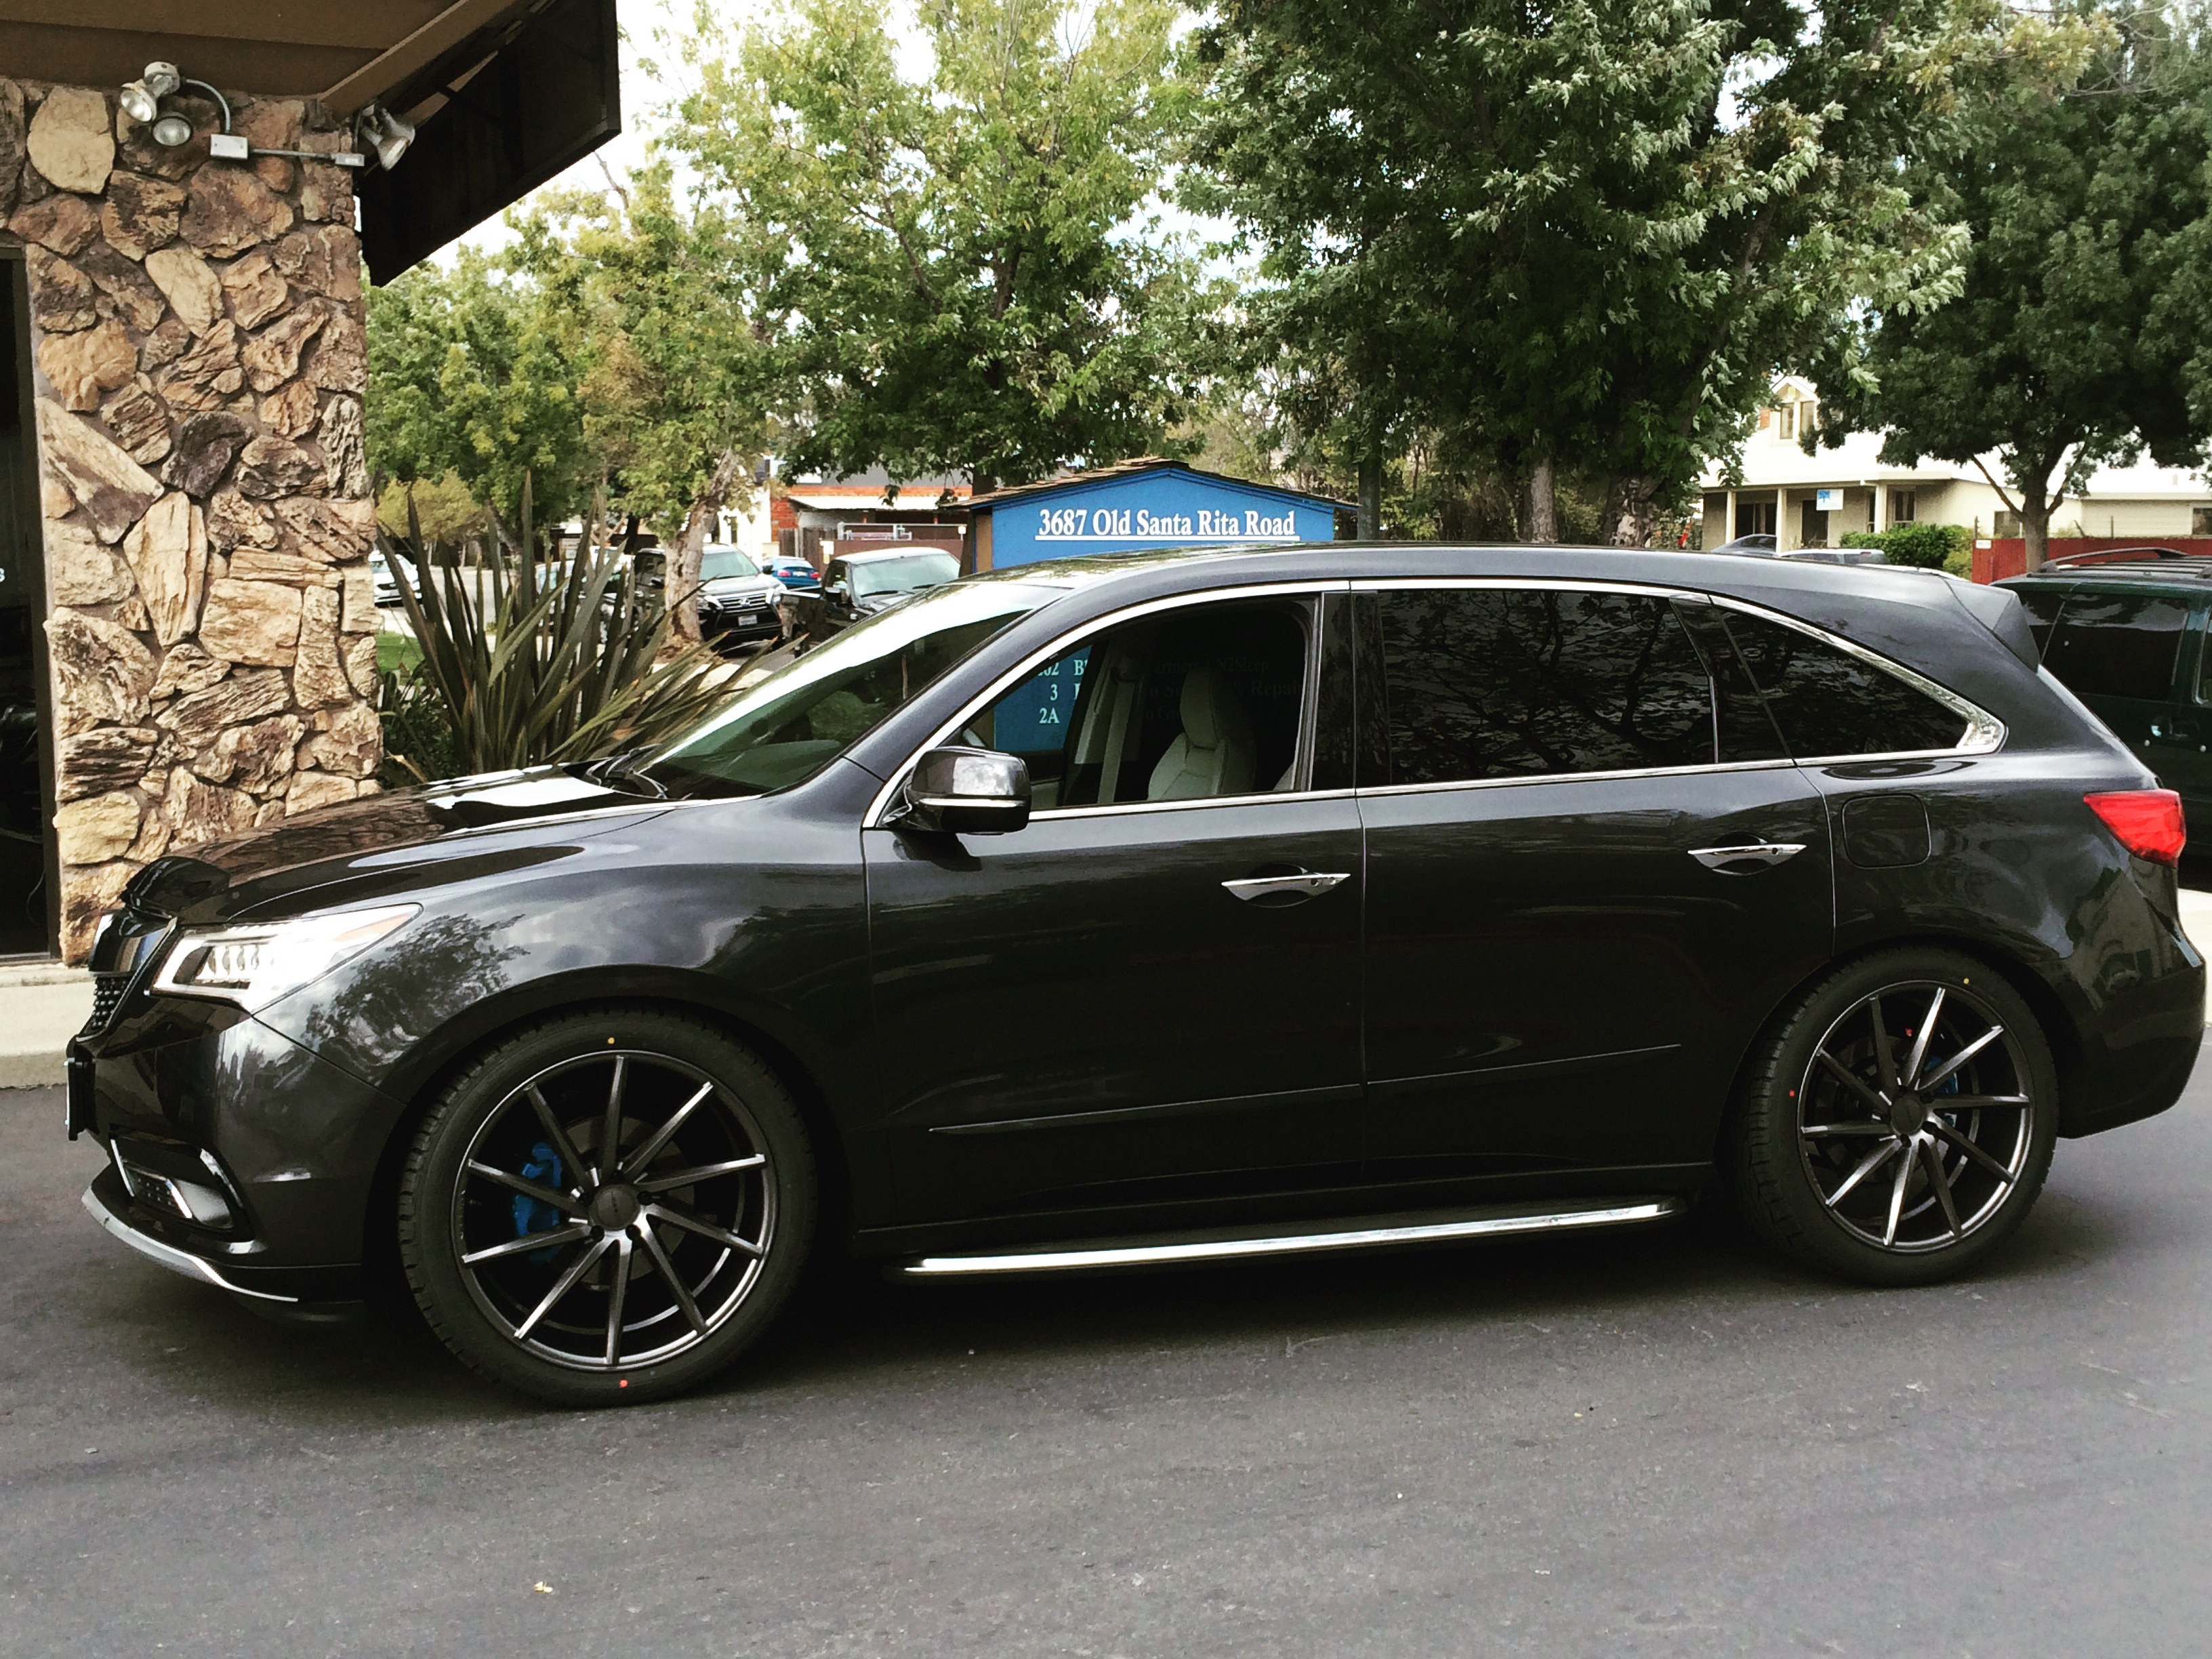 COMPILATION THREAD G Wheels And Tires Acura MDX Forum Acura - Acura mdx wheels